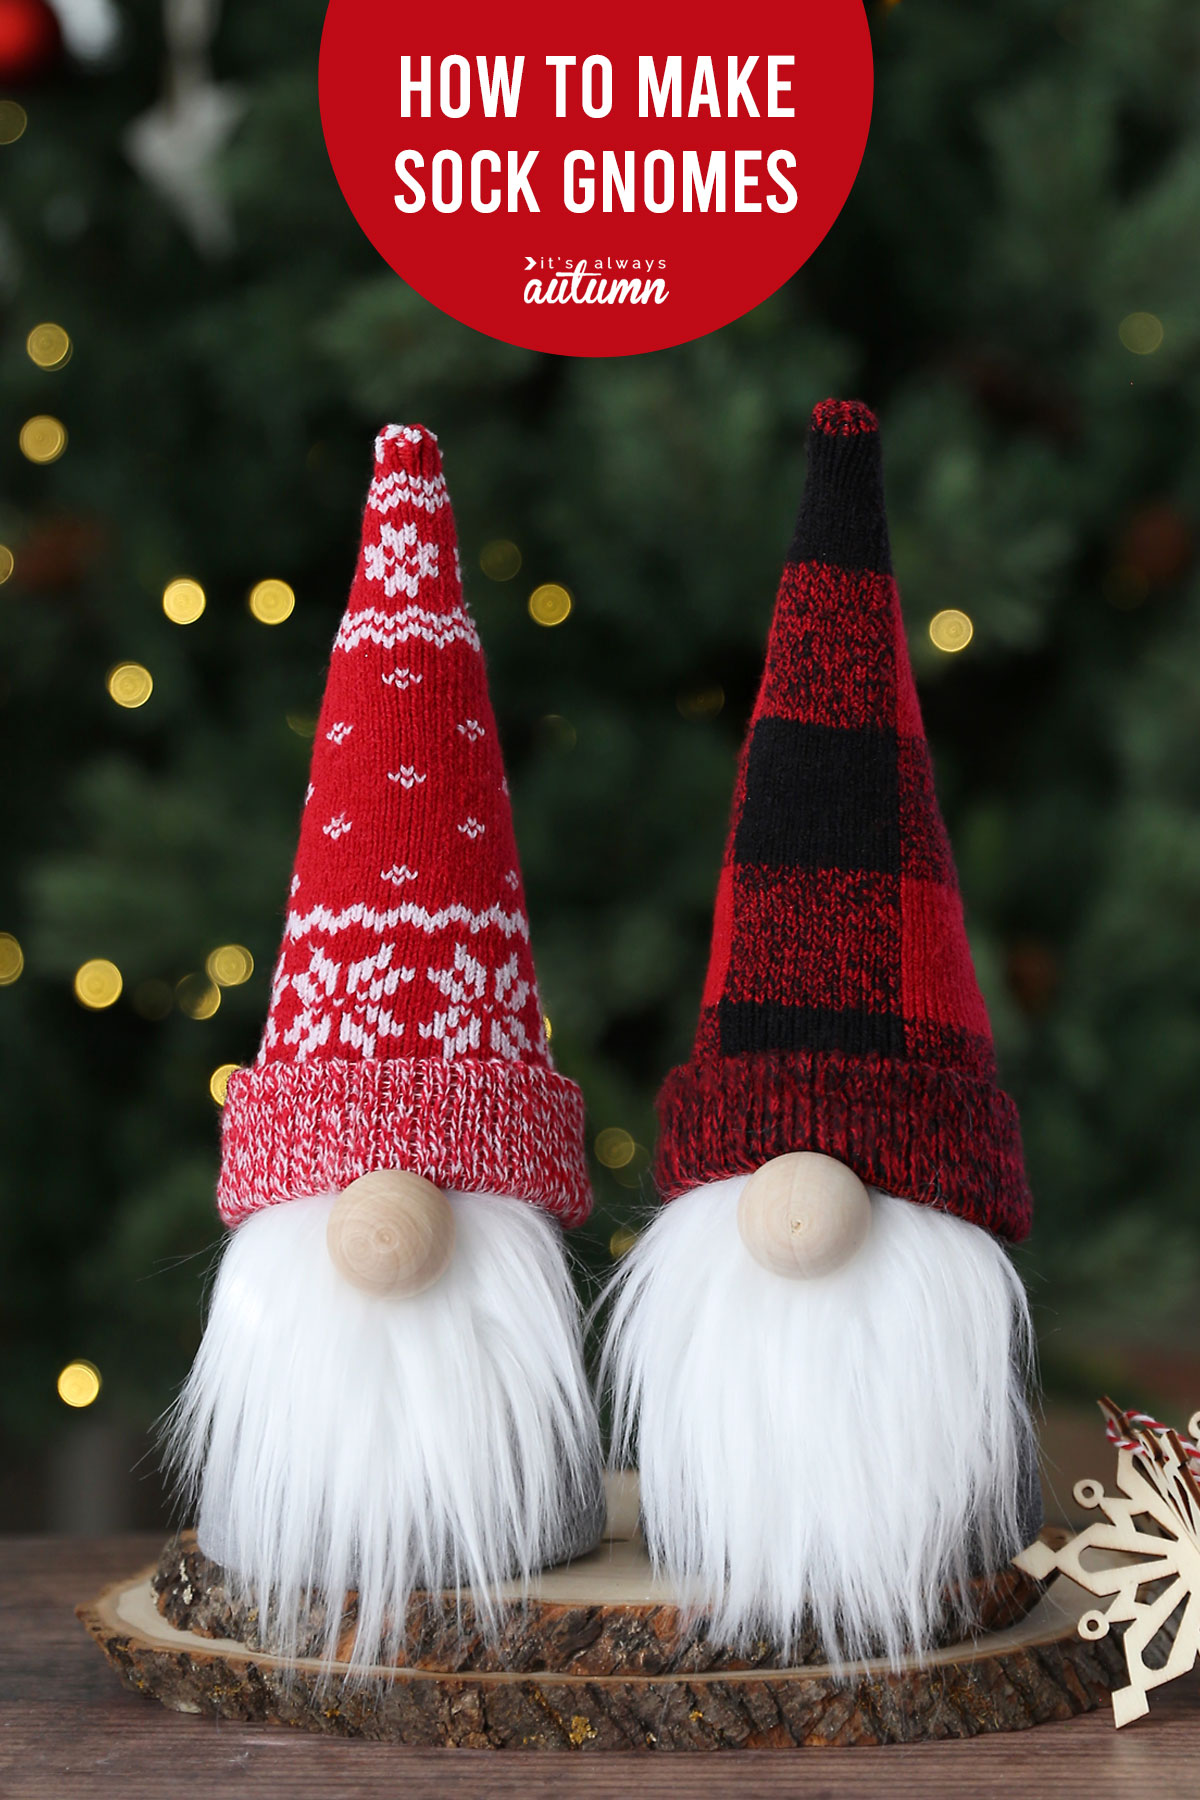 Learn how to make adorable sock gnomes for Christmas or any other holiday!